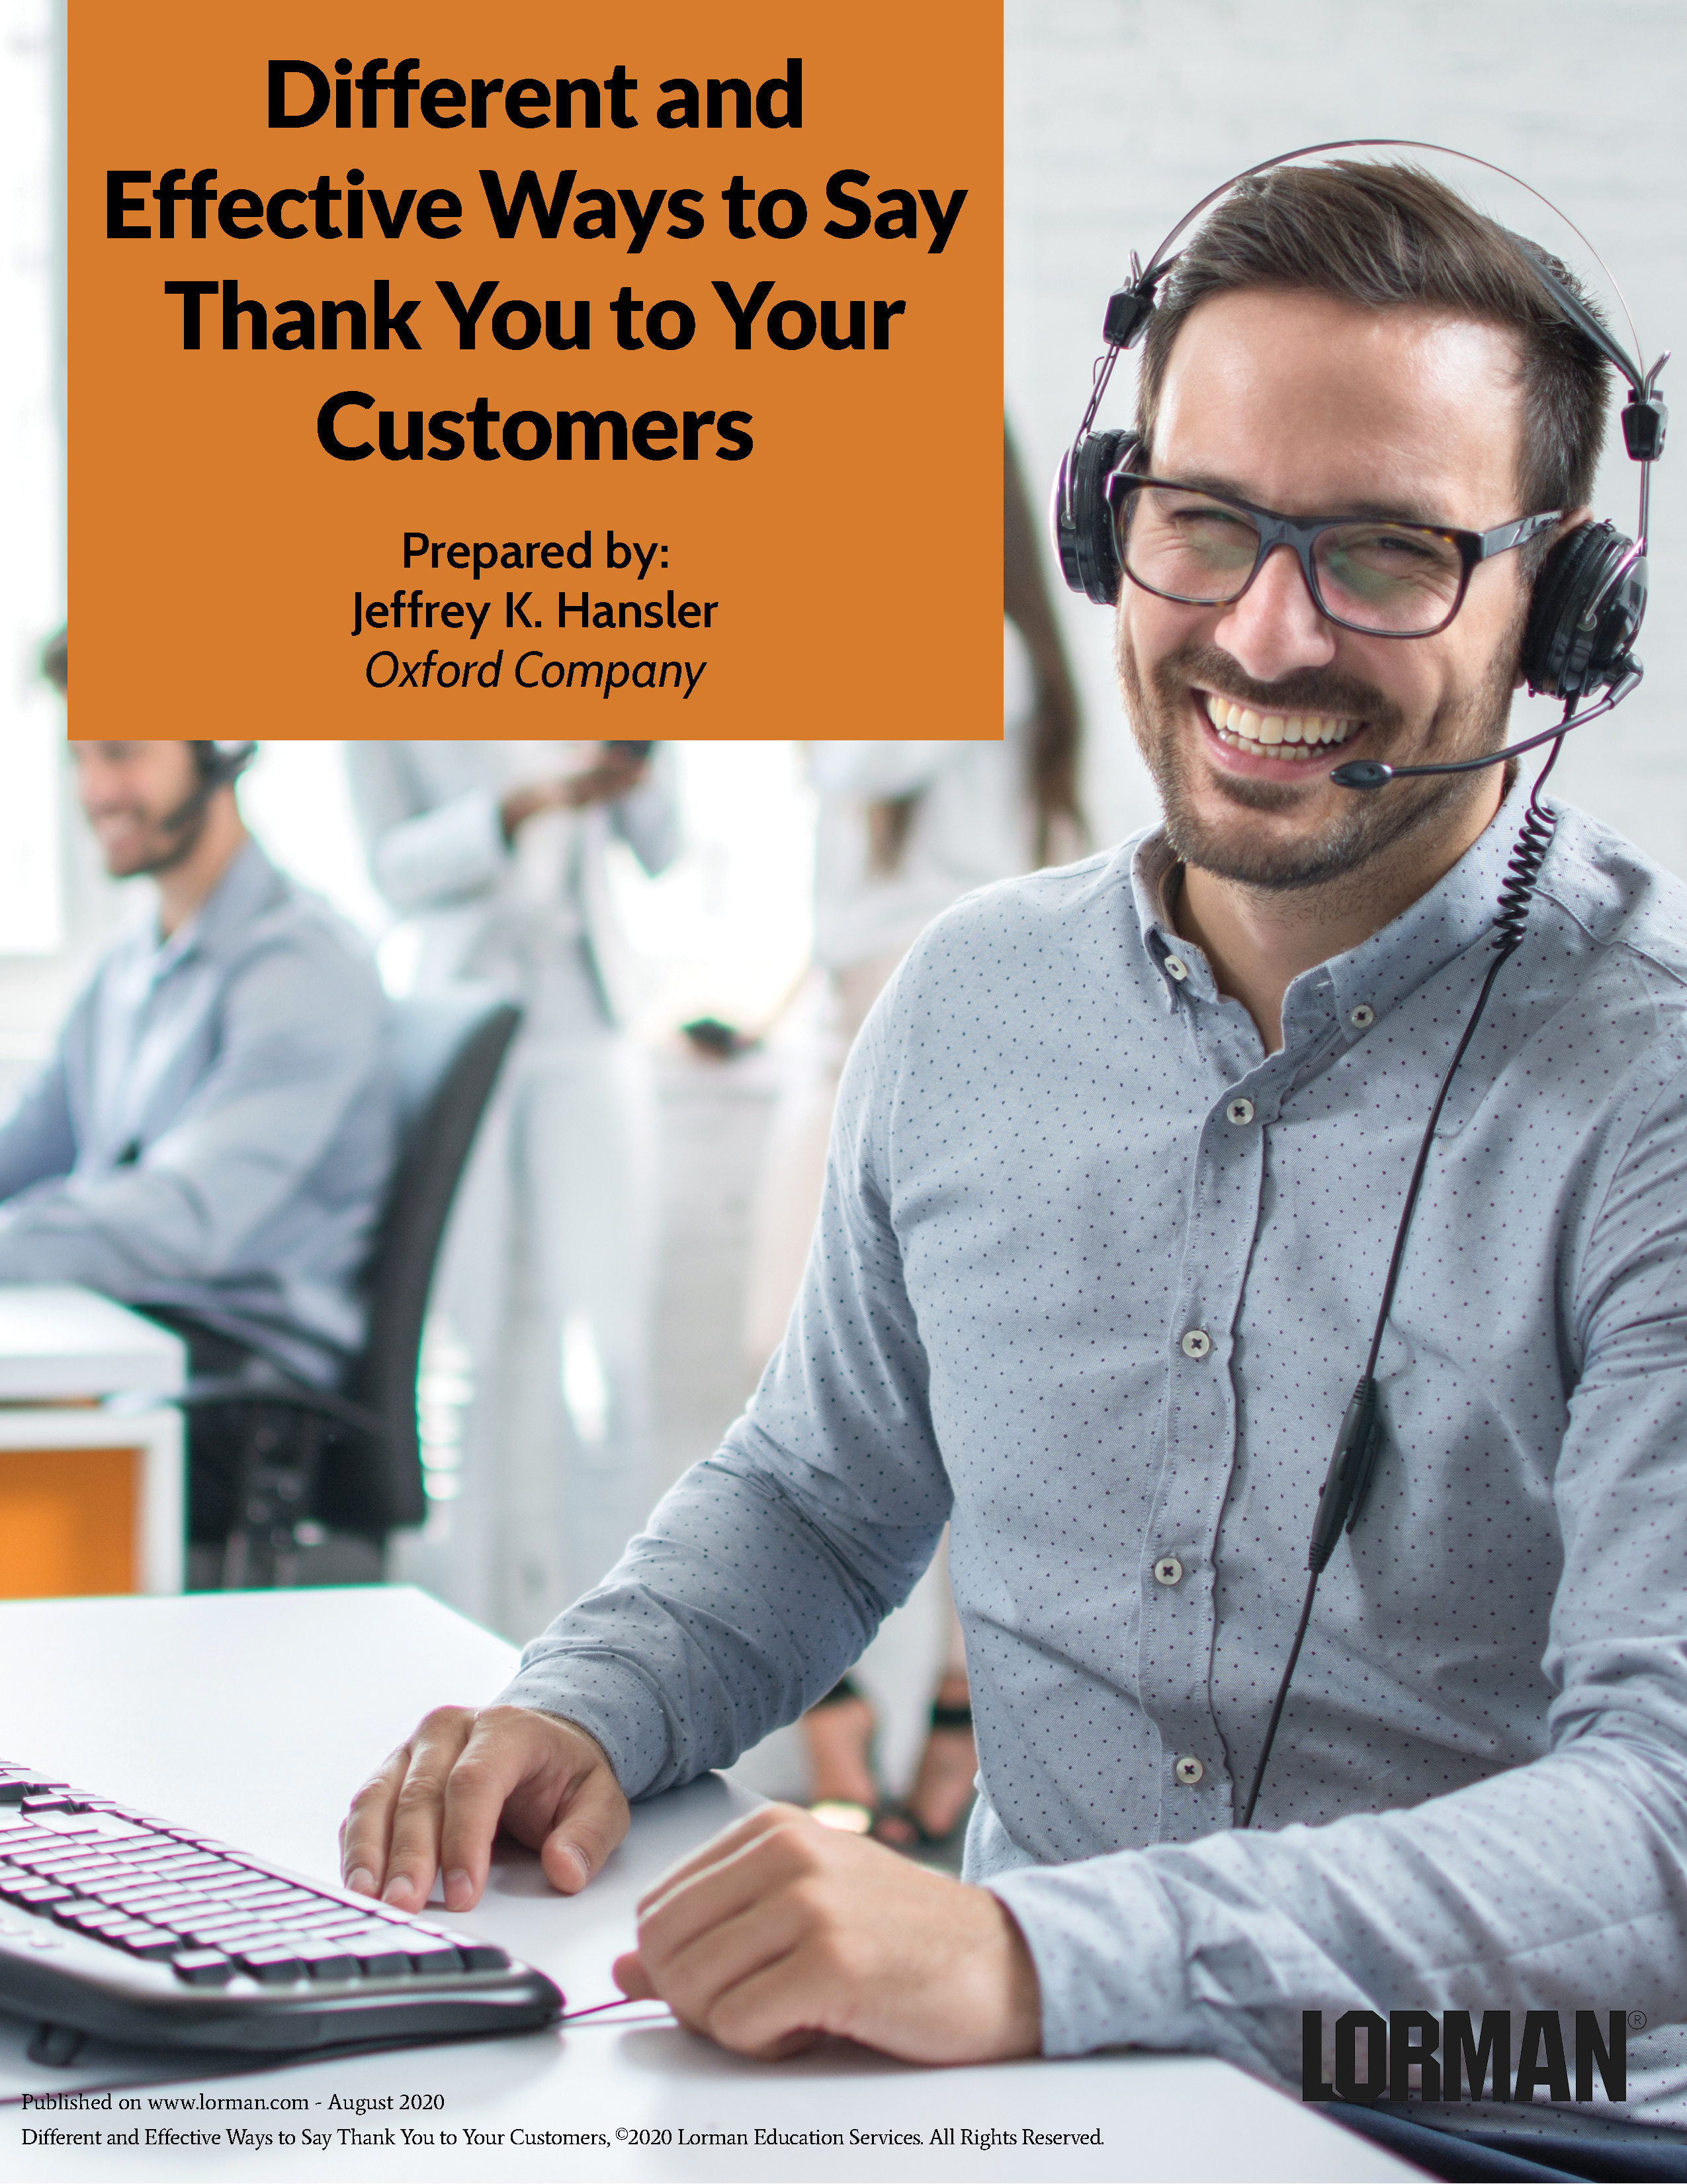 Different and Effective Ways to Say Thank You to Your Customers